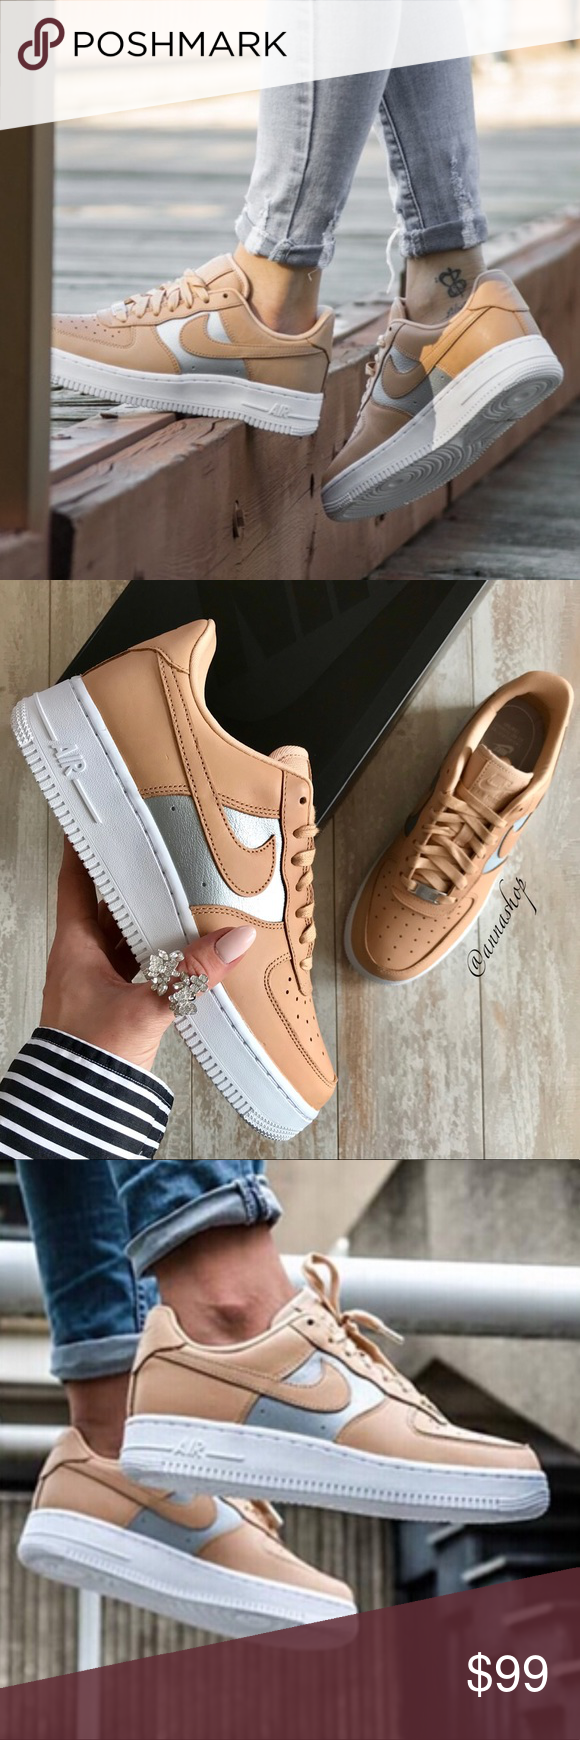 NWT Nike Air Force 1 special edition Premium Brand new with